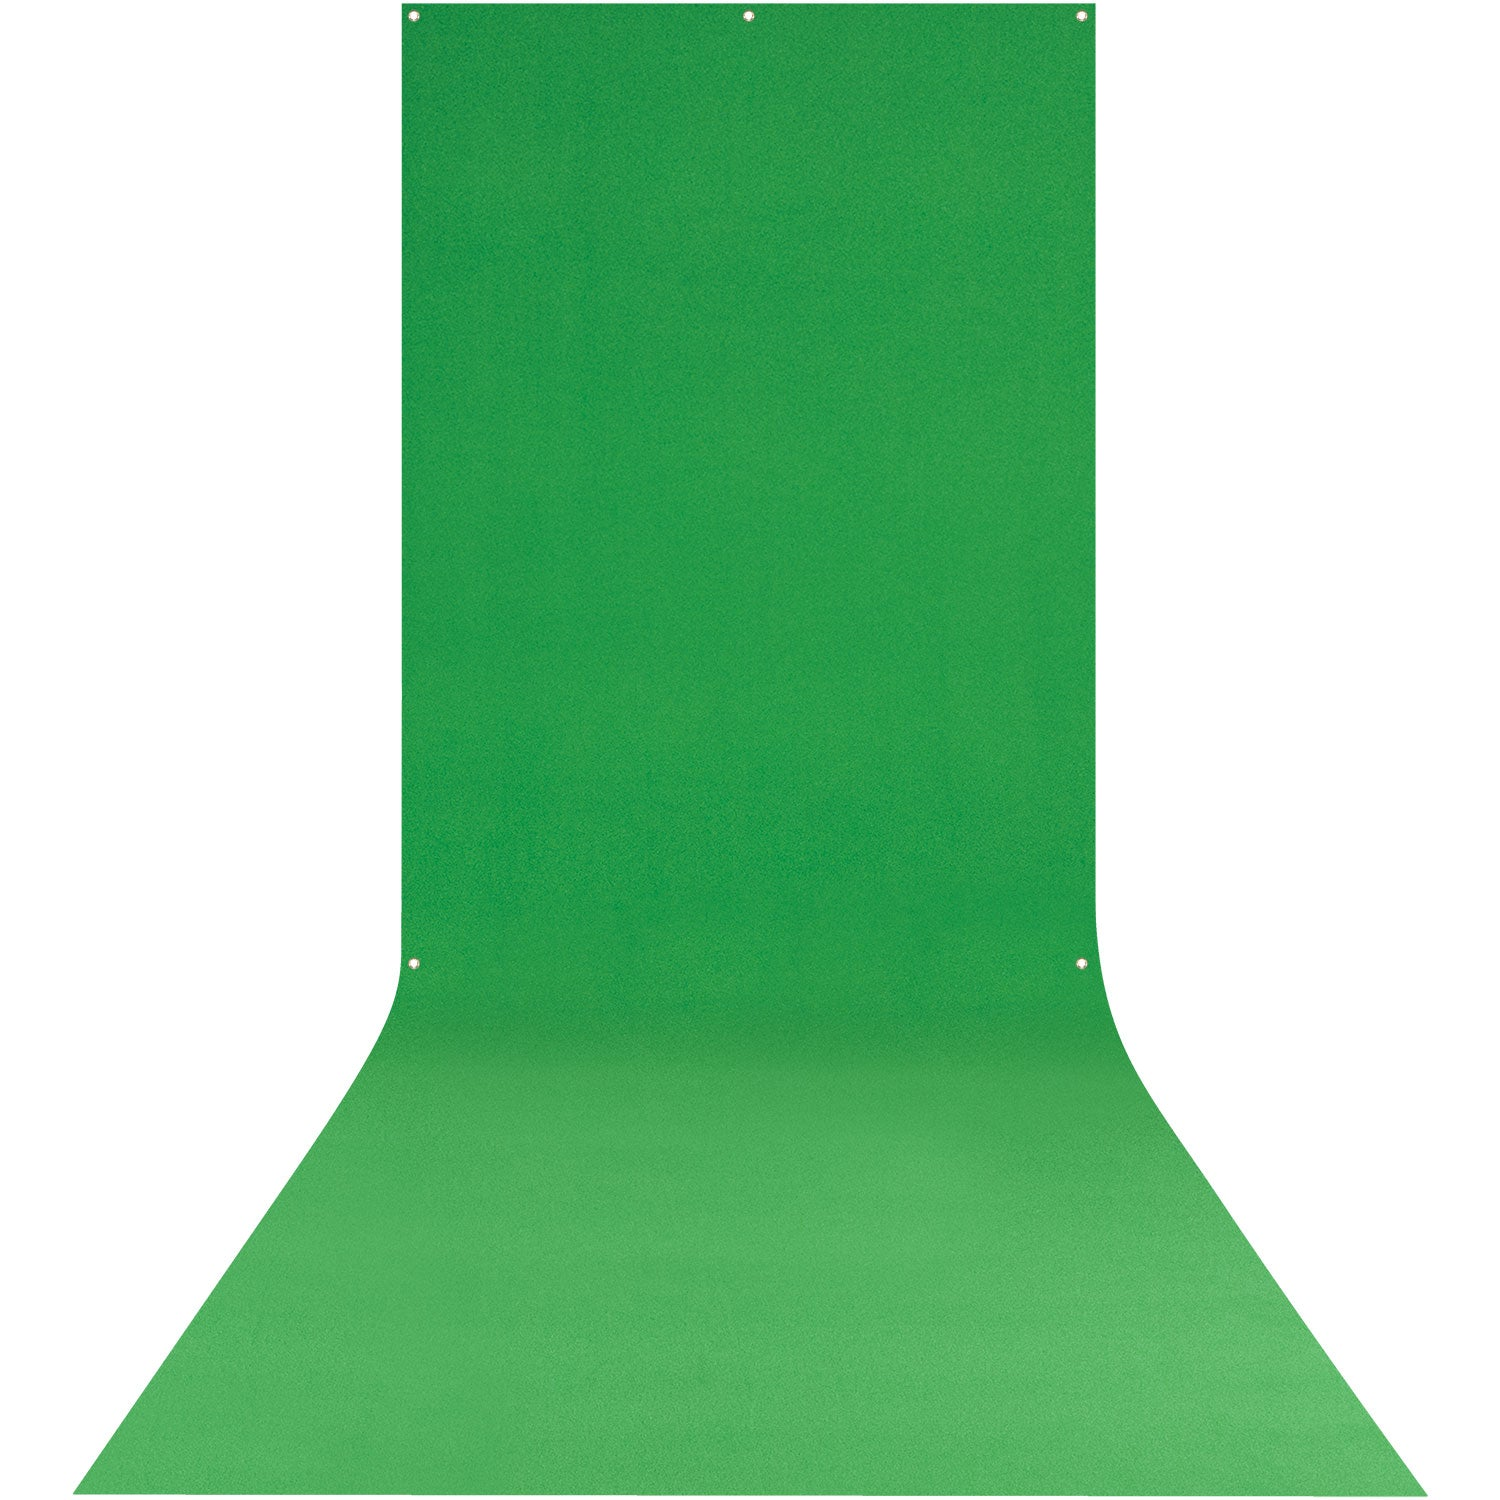 X-Drop Wrinkle-Resistant Backdrop Cloths only (5' x 12') (White / Grey / Black / Green )